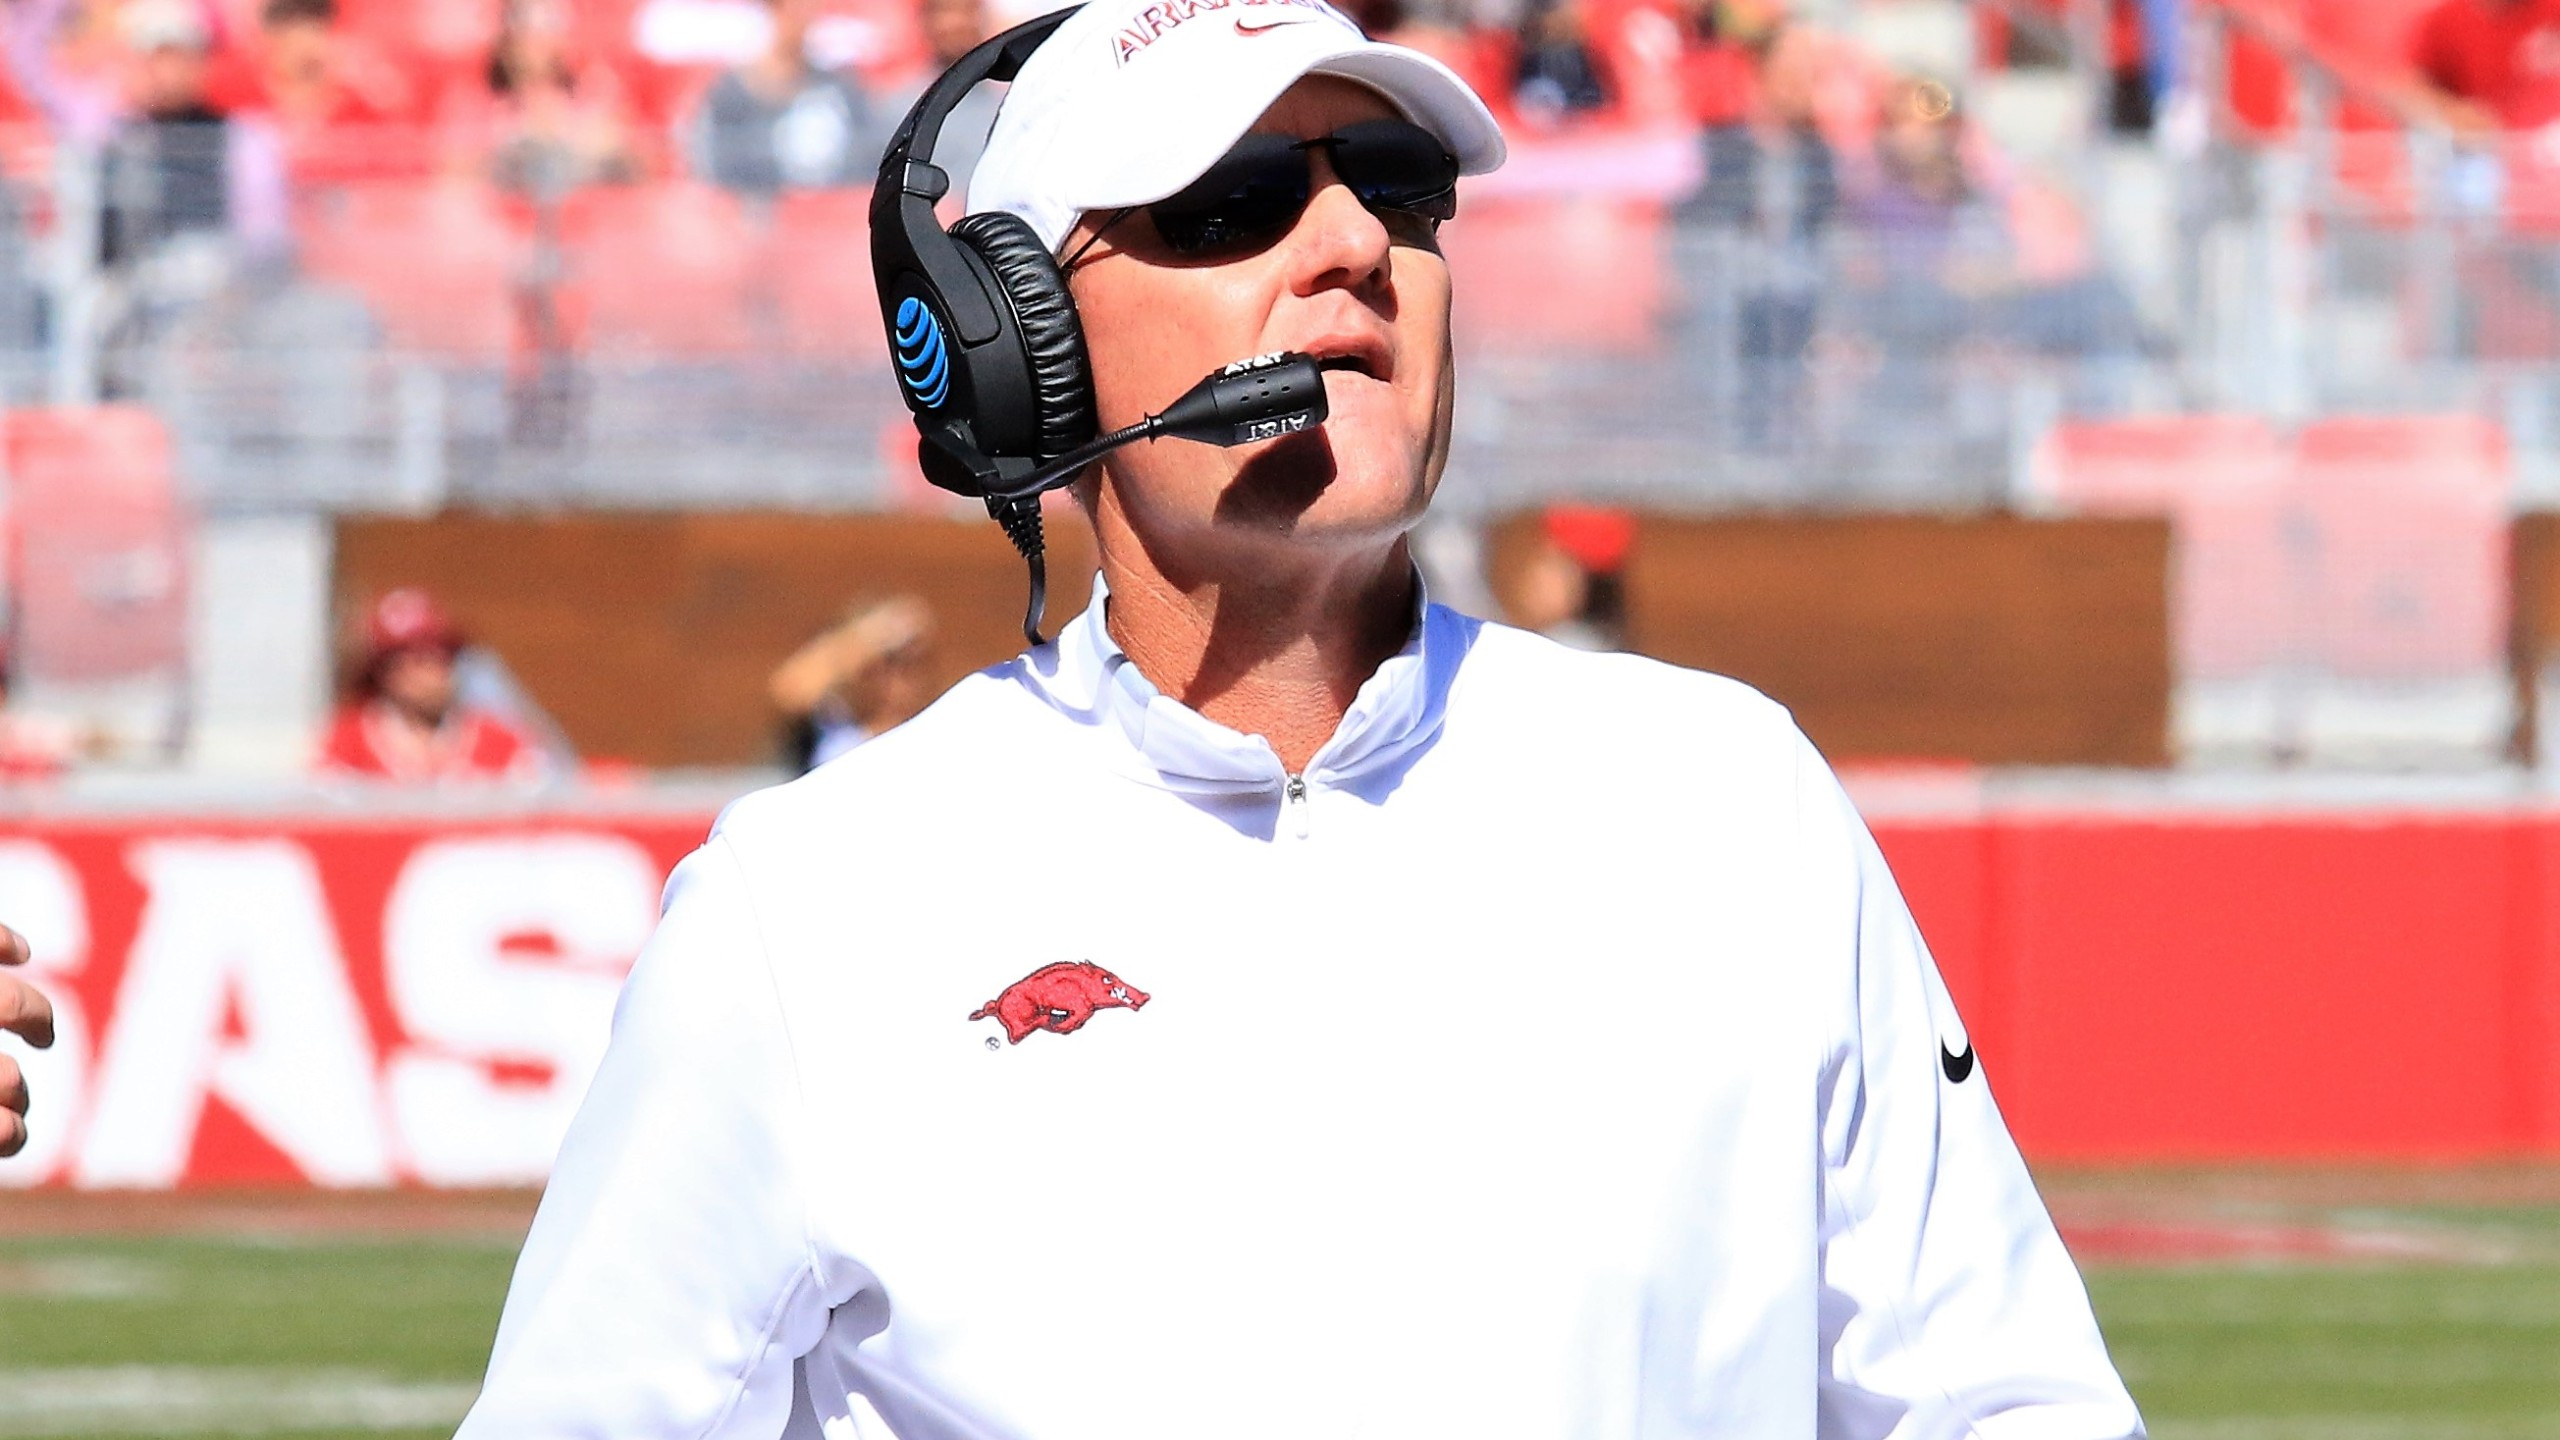 chad morris looking up_1540485576468.JPG.jpg